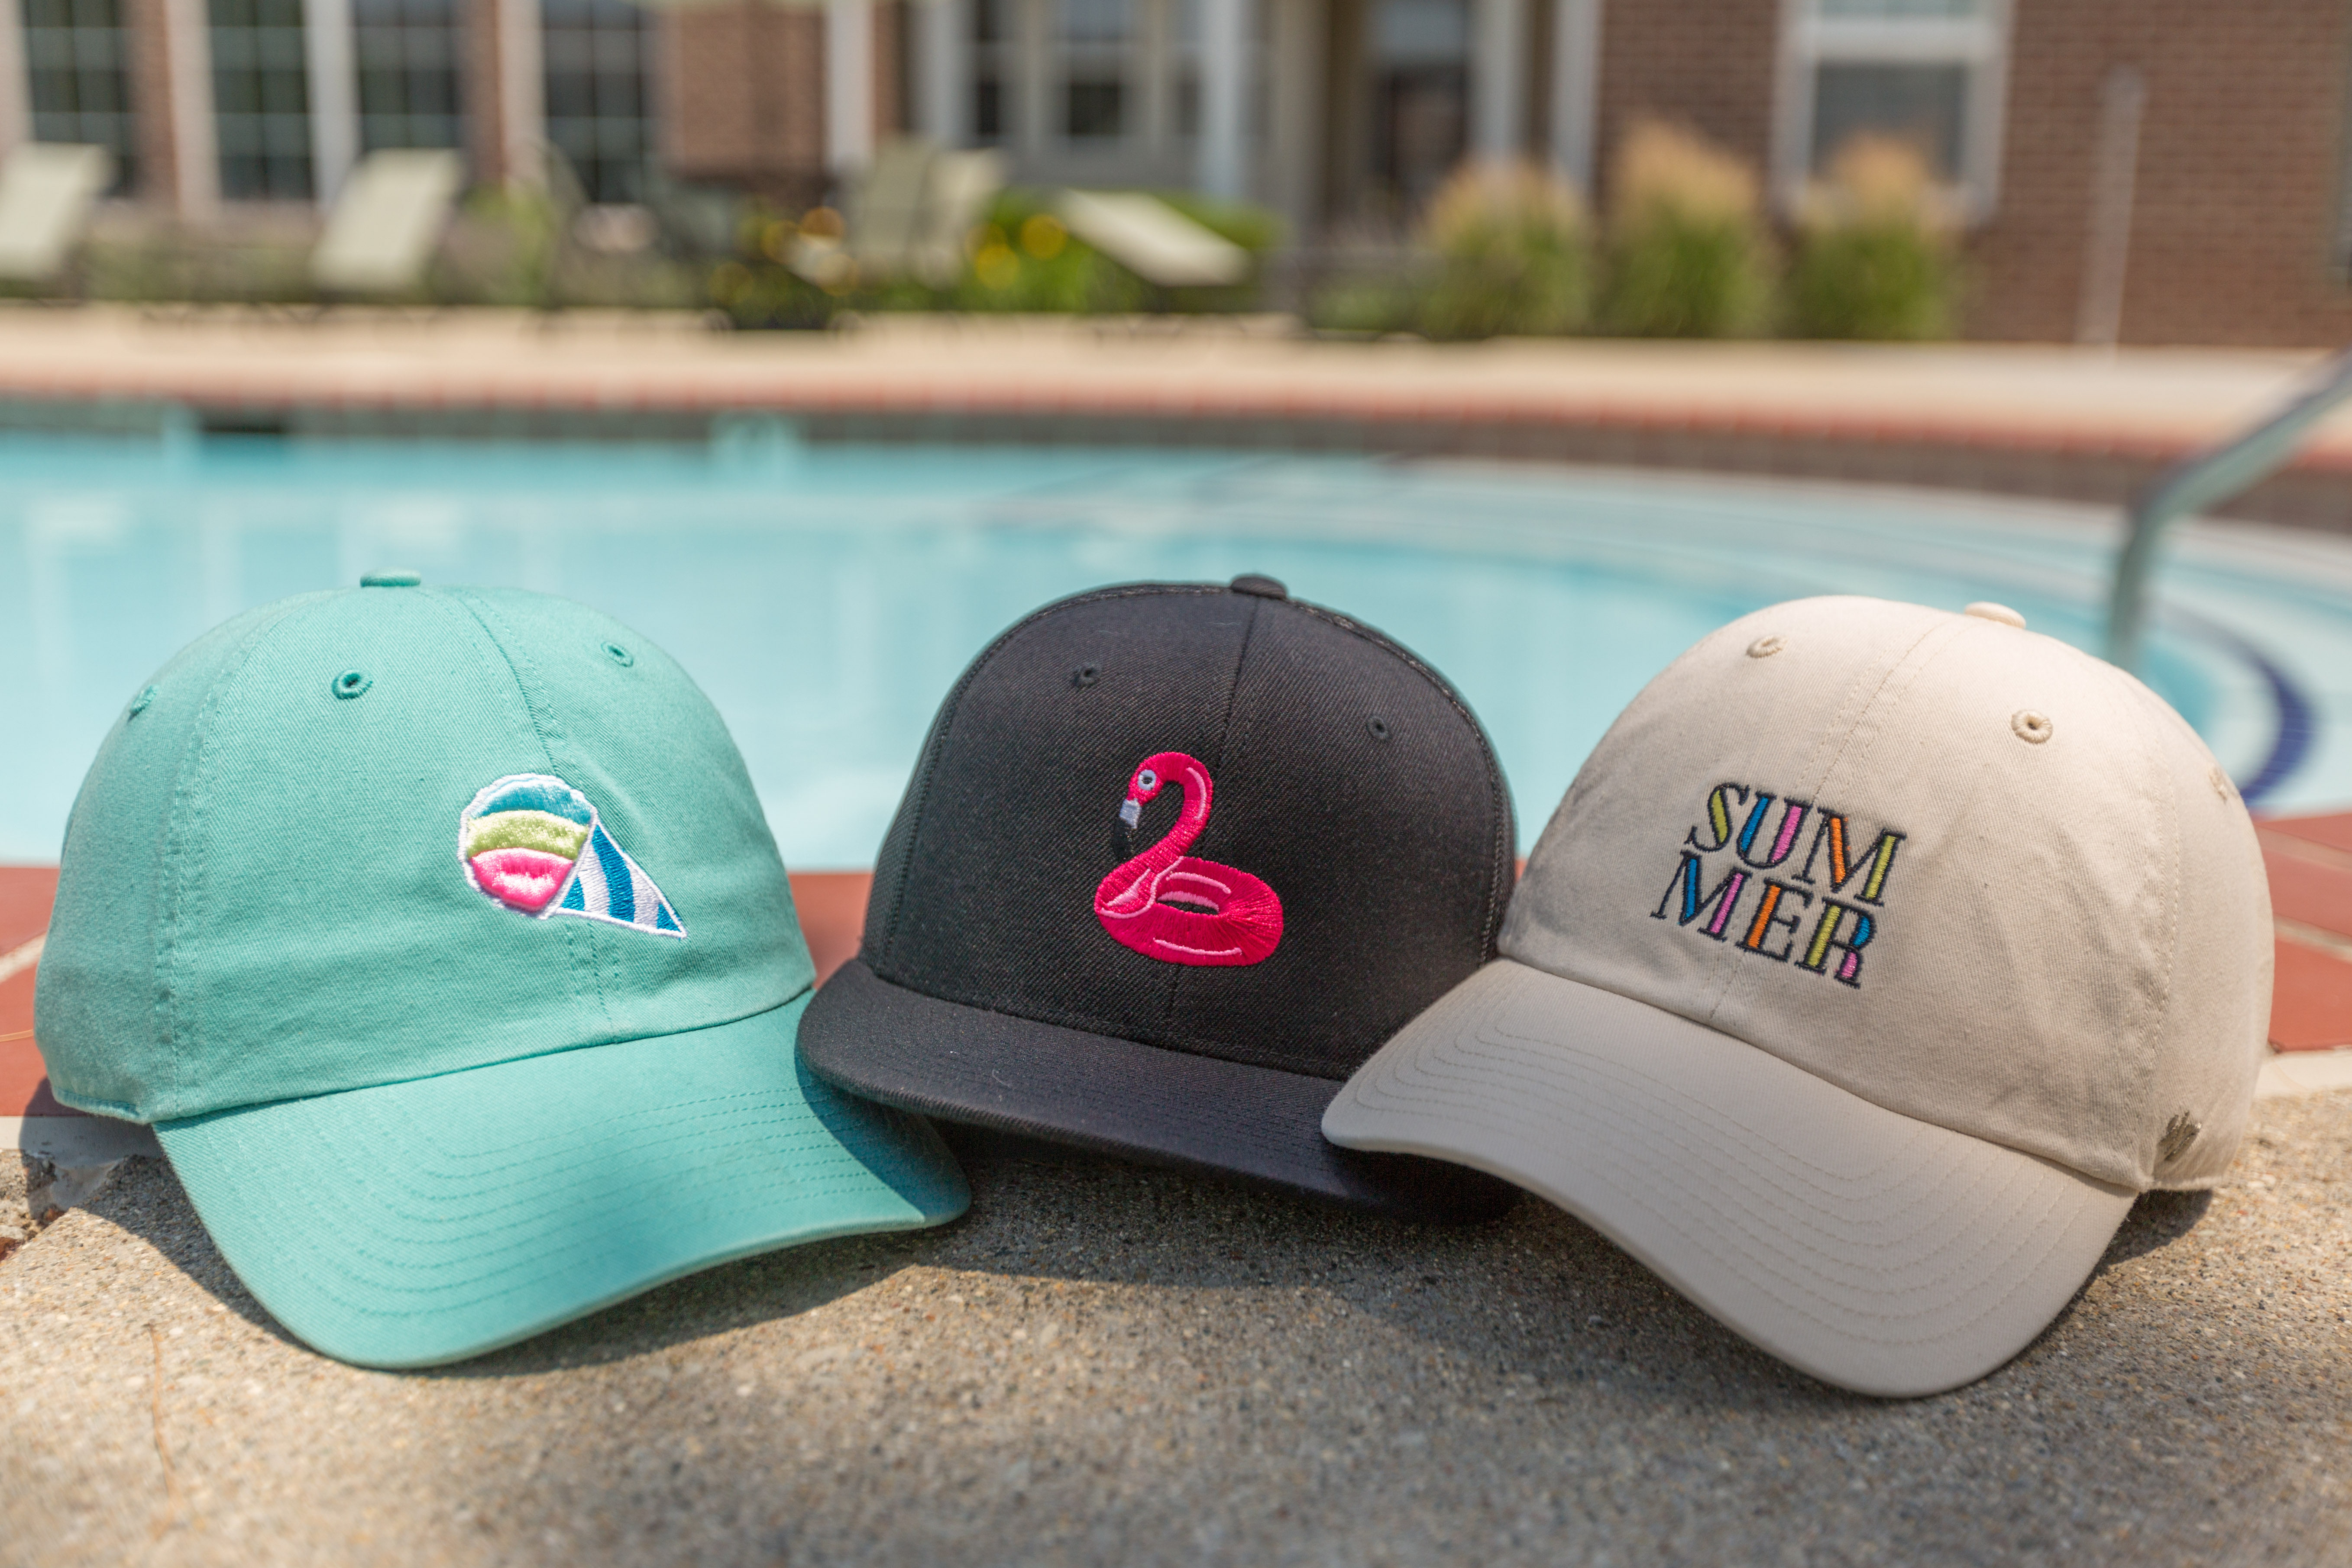 Personalize your summer with a custom hat from Lids Custom Zone. This  collection of unique art features newly added designs that will work  perfectly for a ... 932637e049e